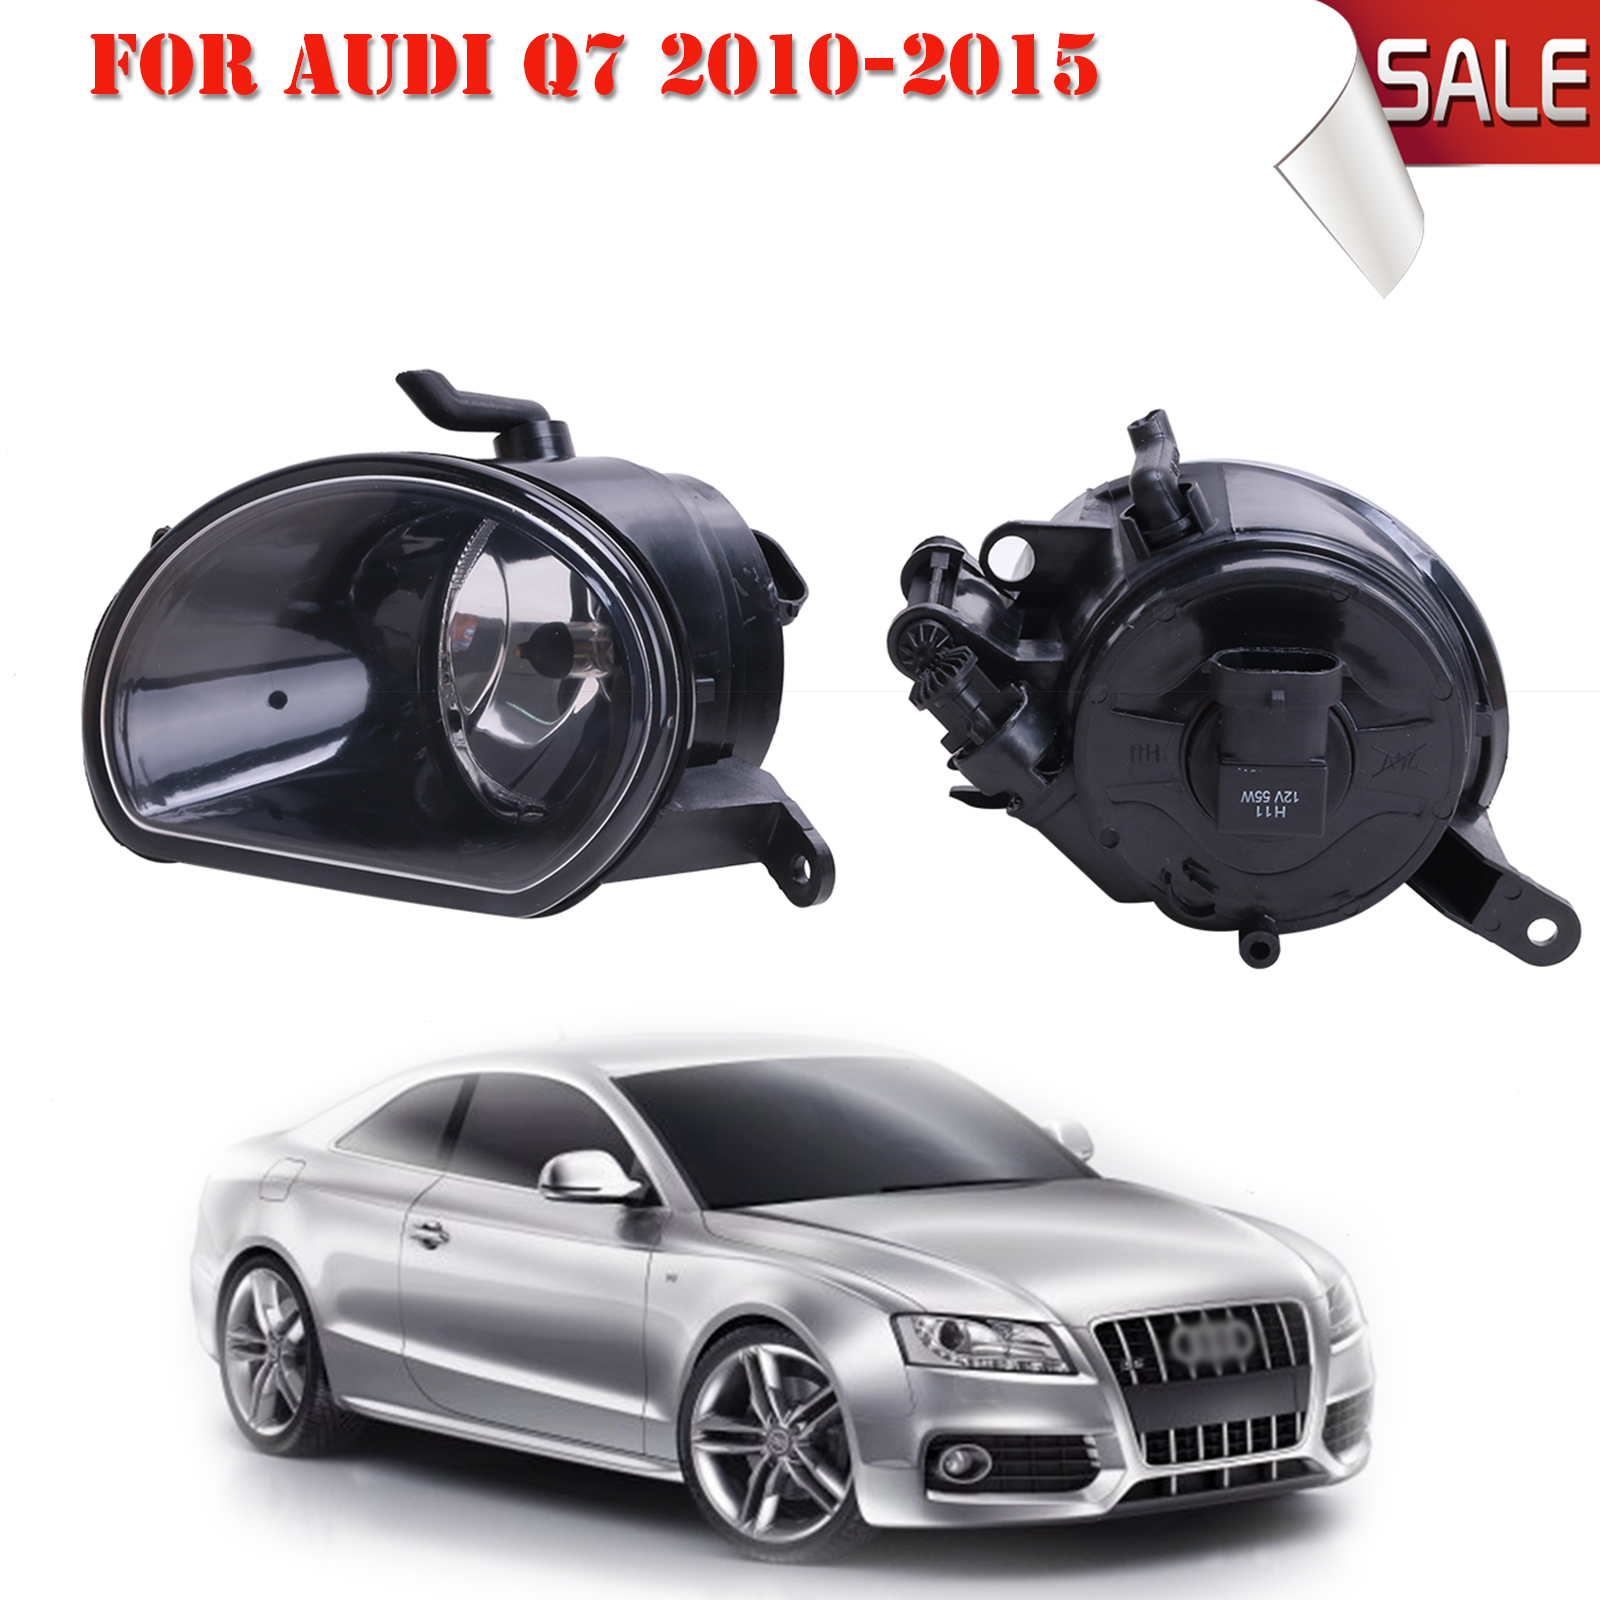 Front Fog Light Fog Lamp with H11 Bulbs For Audi Q7 2010 2011 2012 2013 2014 2015 Car-Styling #P316 front fog lights for nissan altima 2008 2010 2011 2012 2013 2014 2015 auto bumper lamp h11 halogen car styling light bulb